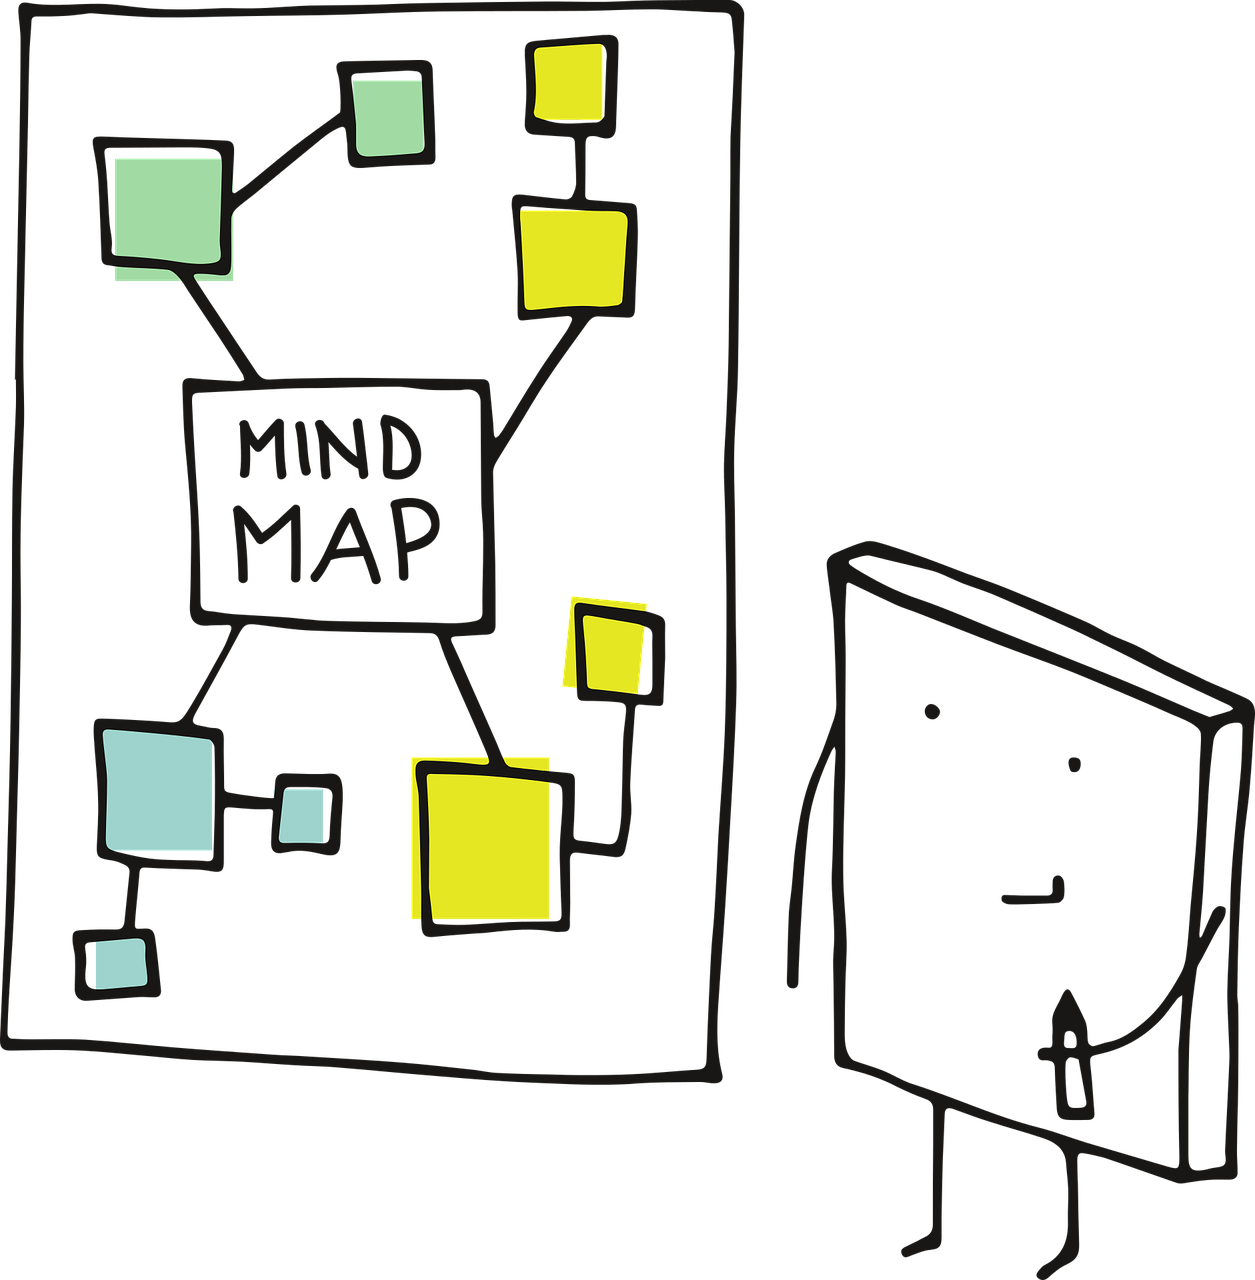 image of mind map